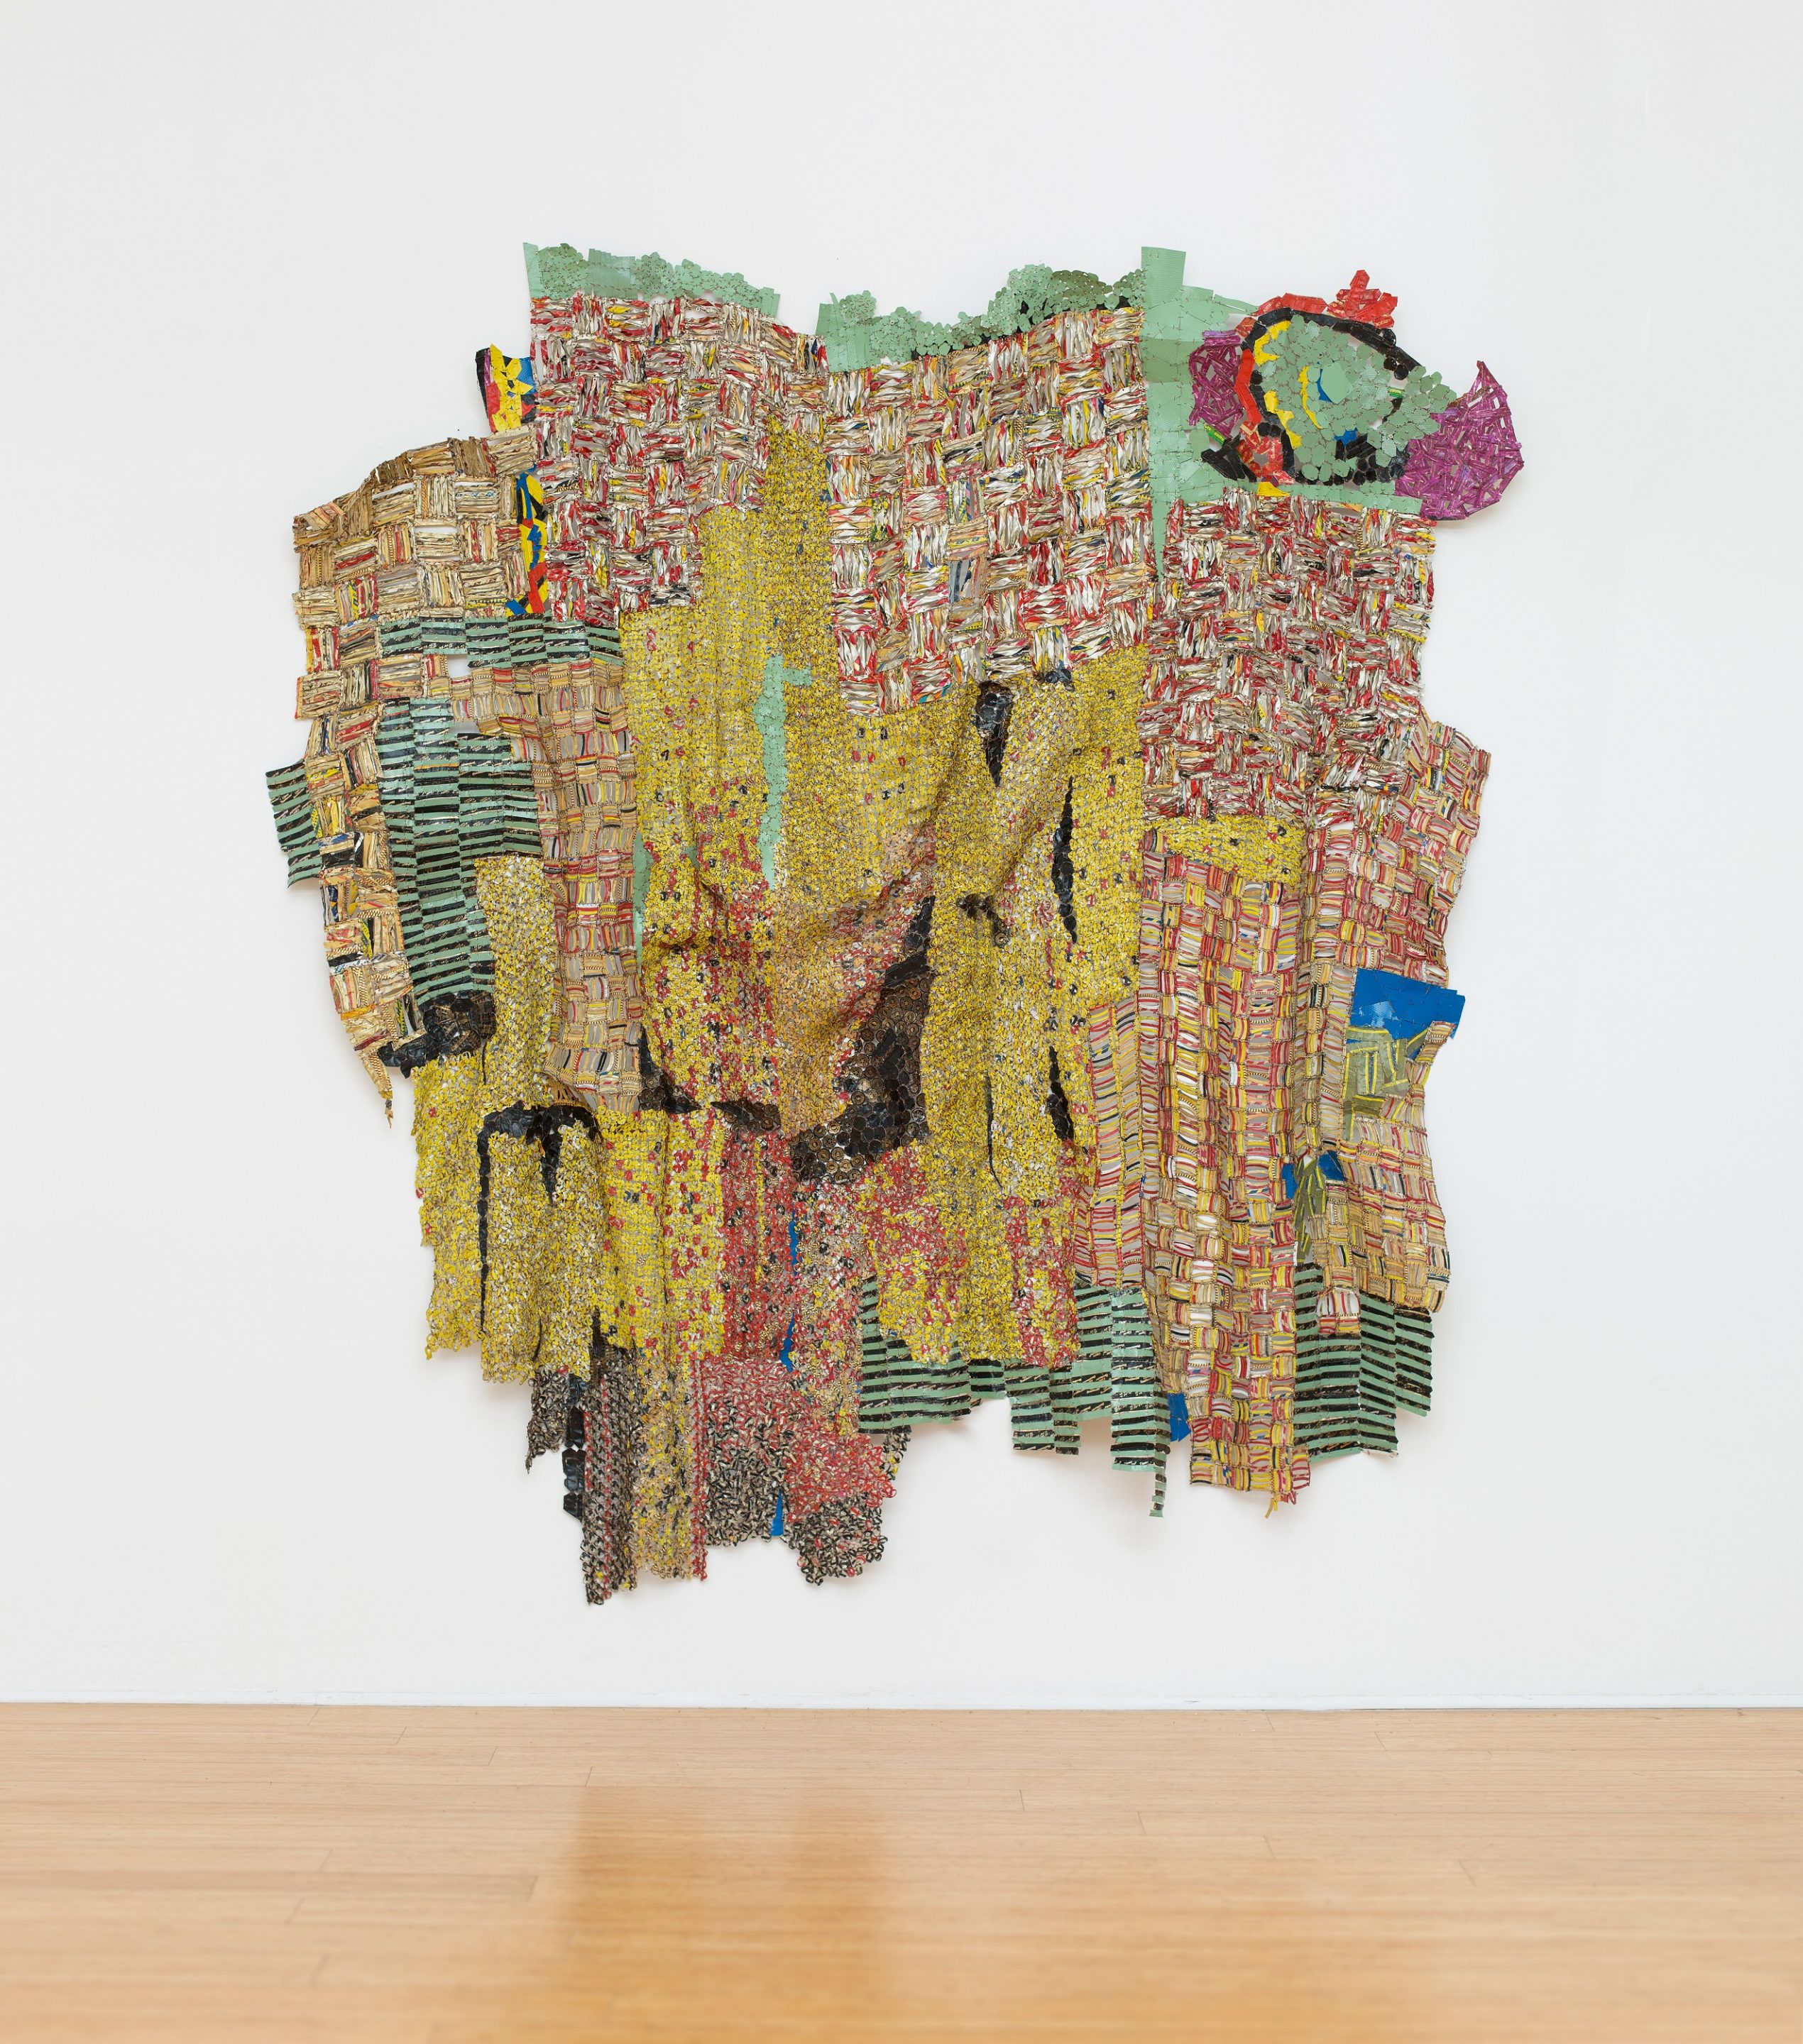 El Anatsui. Avocado Coconut Egg (ACE), 2016, Tapas de aluminio y alabre de cobre. Royal Academy of Arts, Londres. Foto por Jonathan Greet